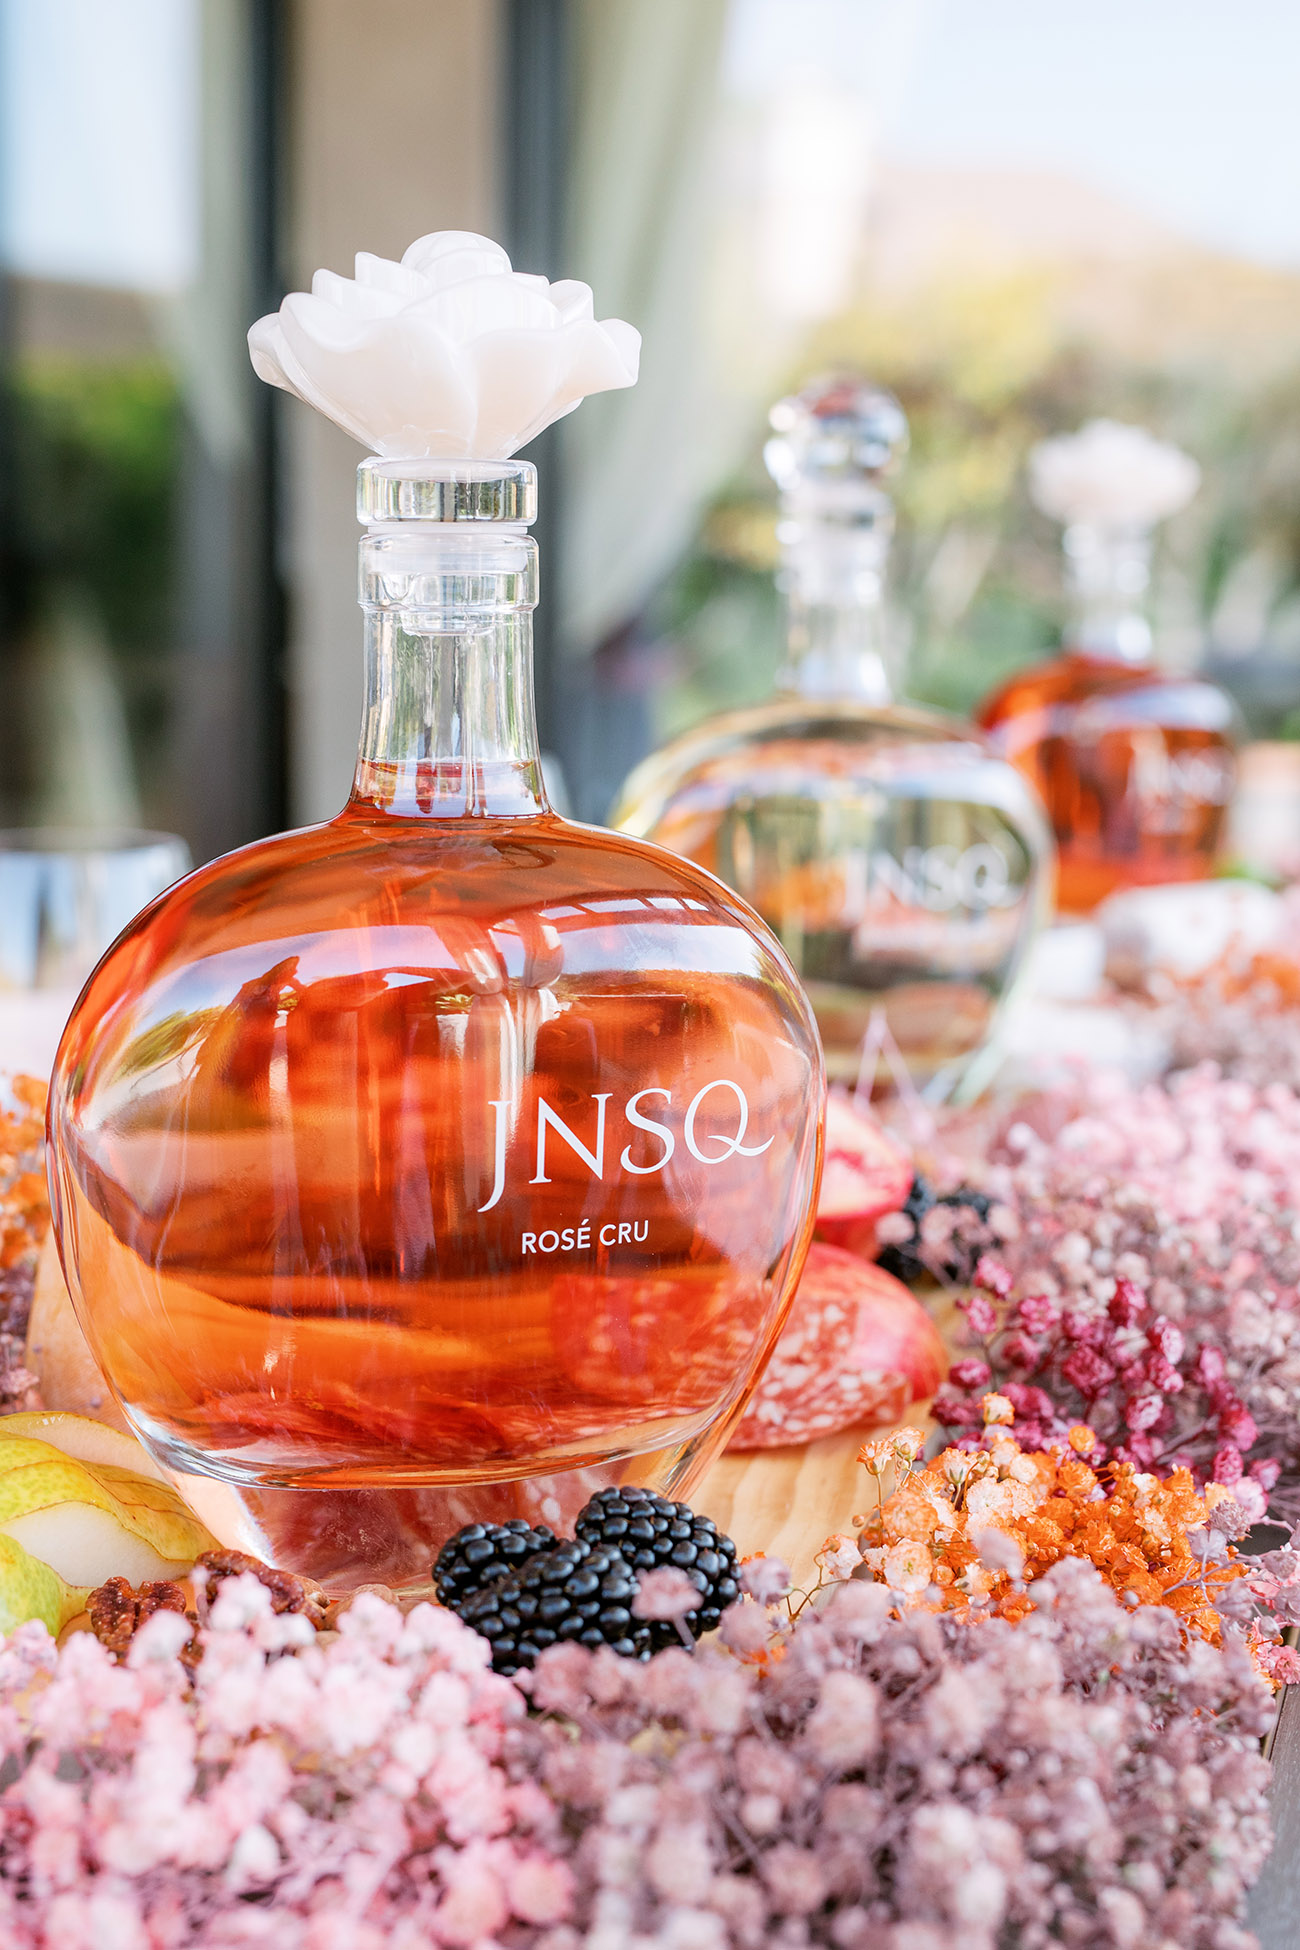 JNSQ Rose Cru bottle